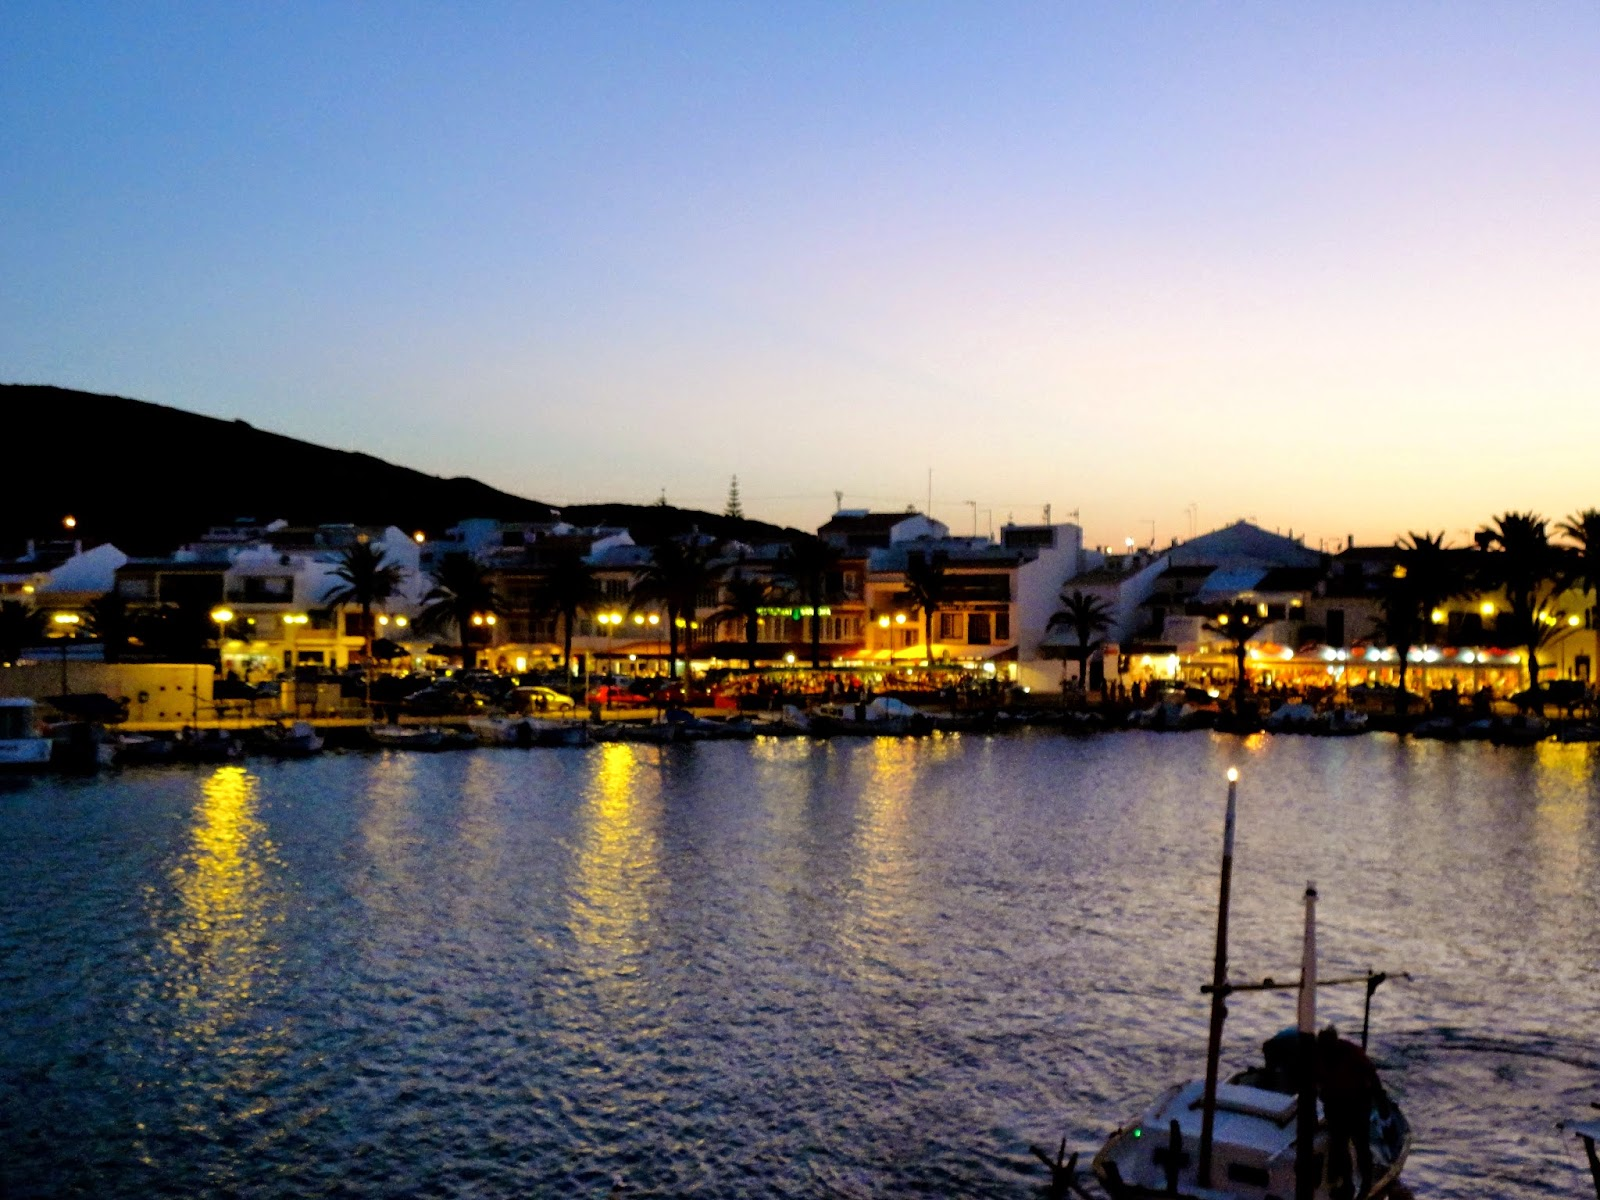 Travel Inspiration | Menorca, Spain | Fornells town lights at night overlooking harbour